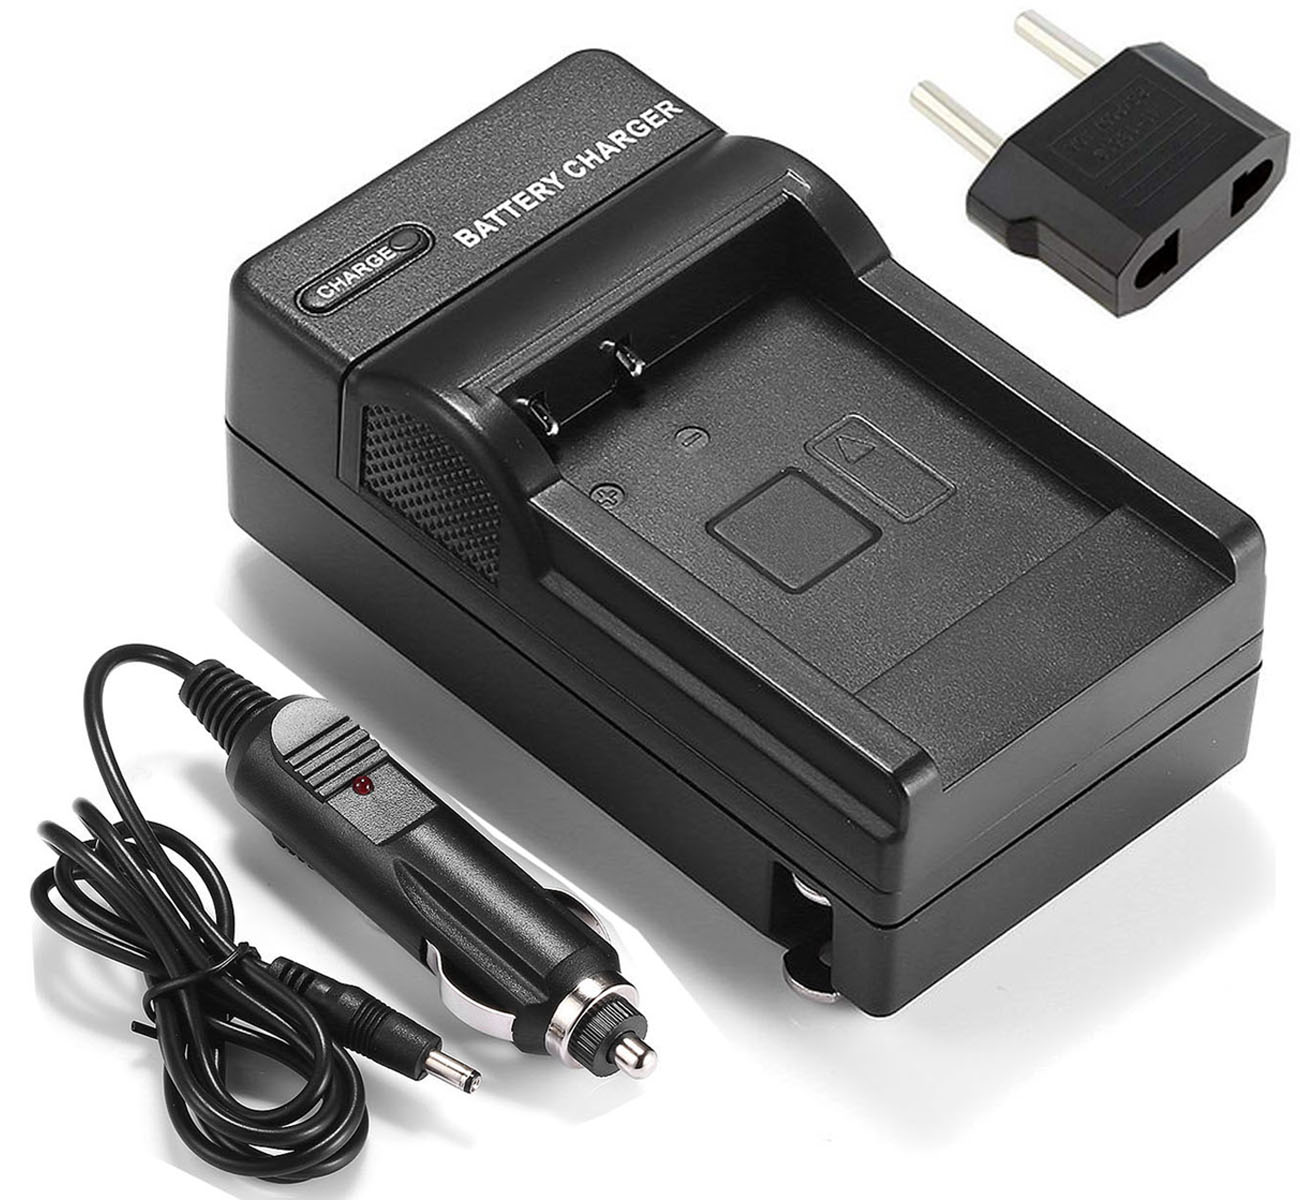 GZ-HM400US Camcorder GZ-HM400U LCD USB Battery Charger for JVC Everio GZ-HM400